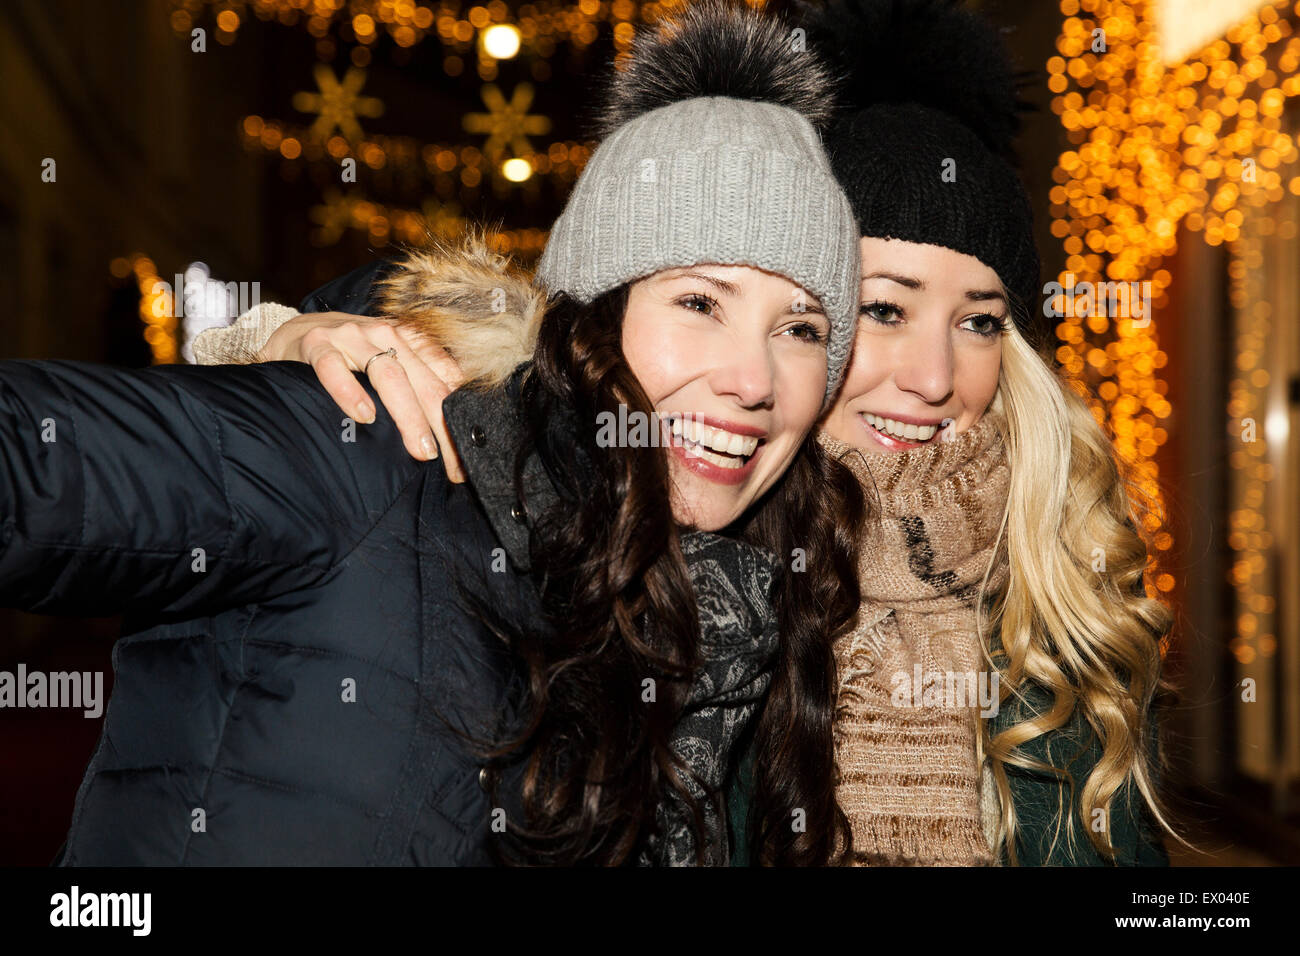 Two mid adult women wearing hats, smiling - Stock Image